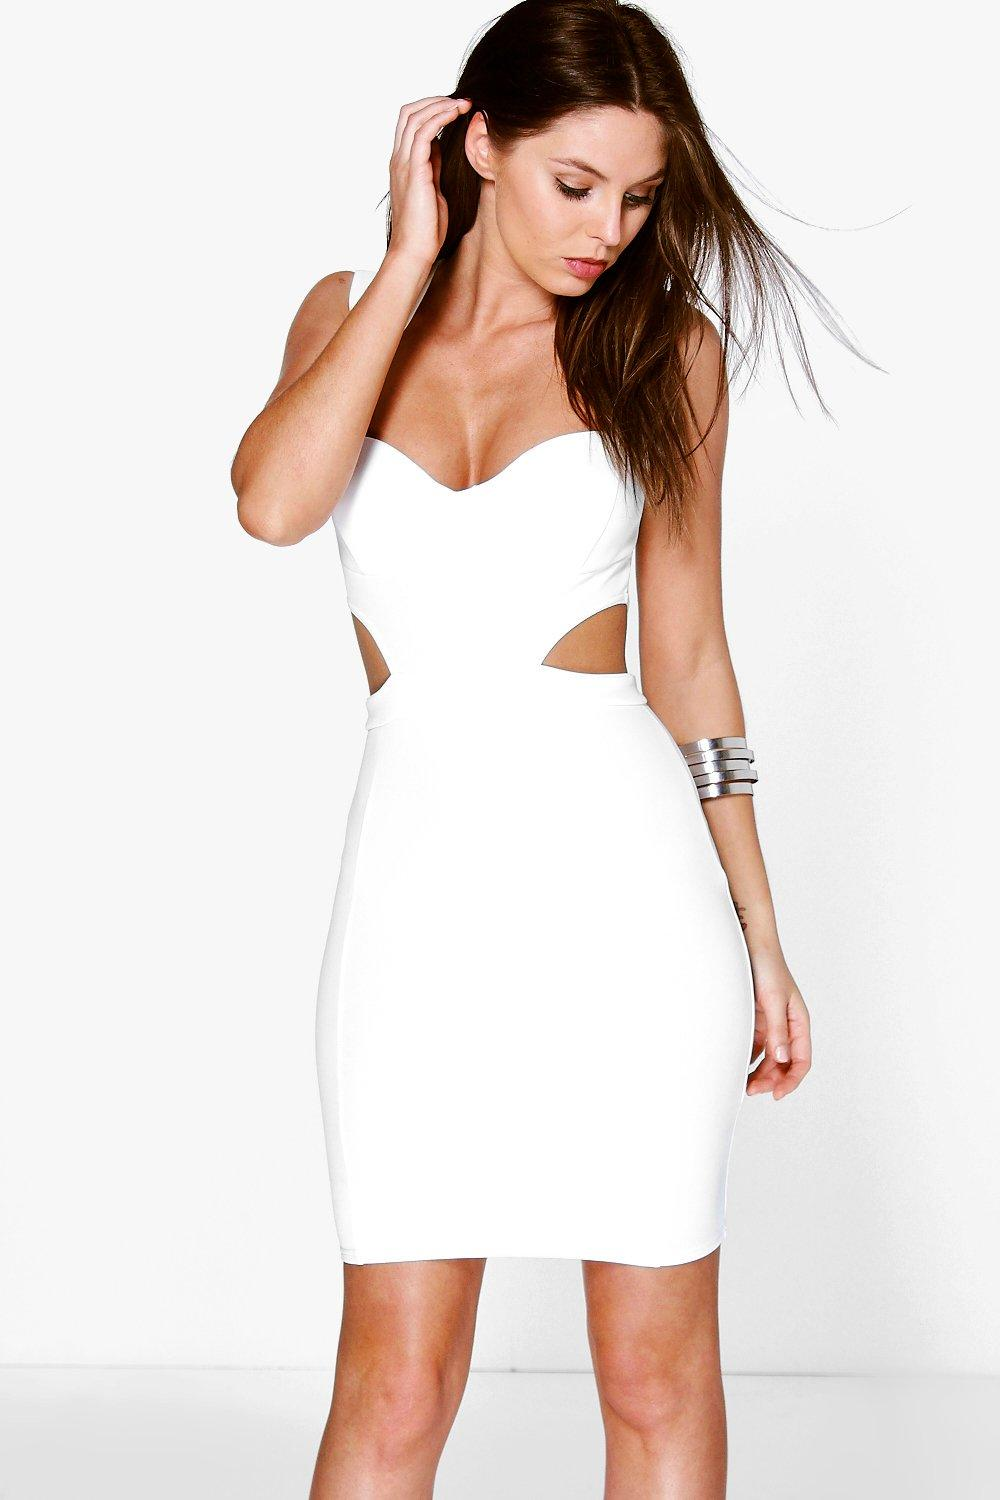 Robyn Sweetheart Cut Out Side Bodycon Dress At Boohoo Com